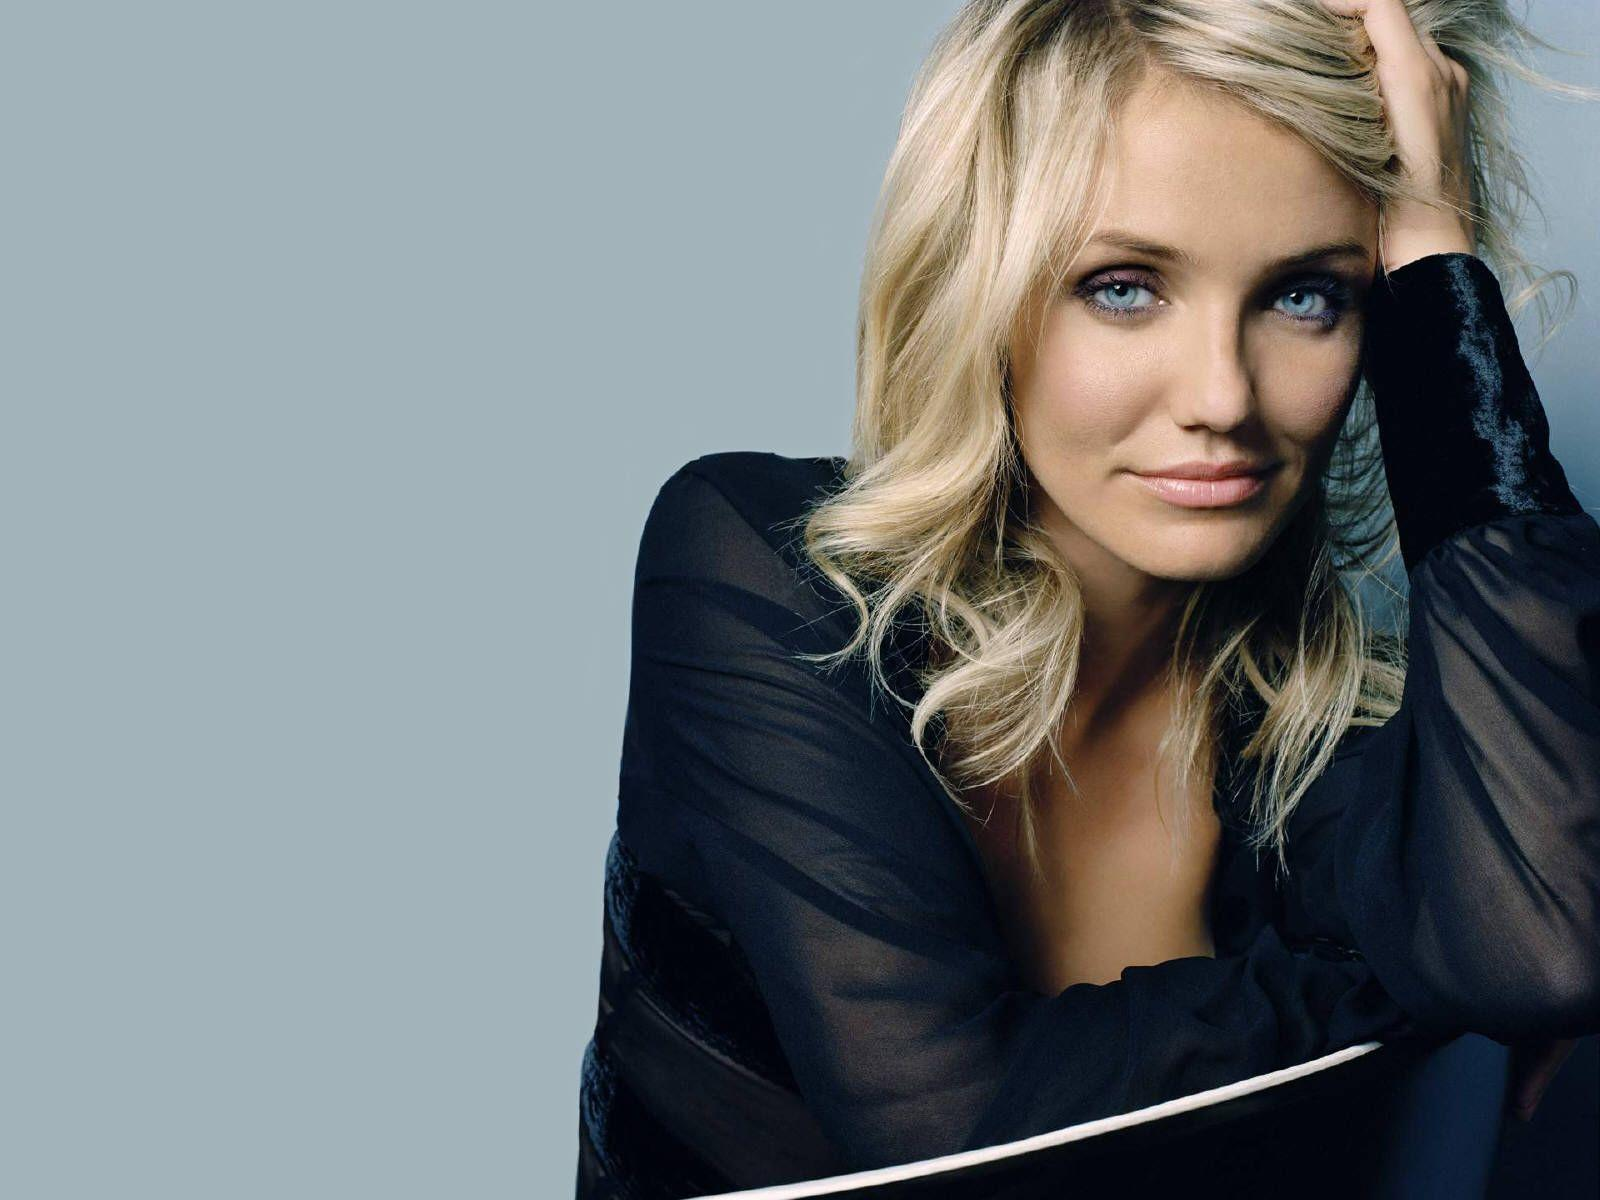 Cameron Diaz Wallpaper 55484 1600x1200 px ~ HDWallSource.com